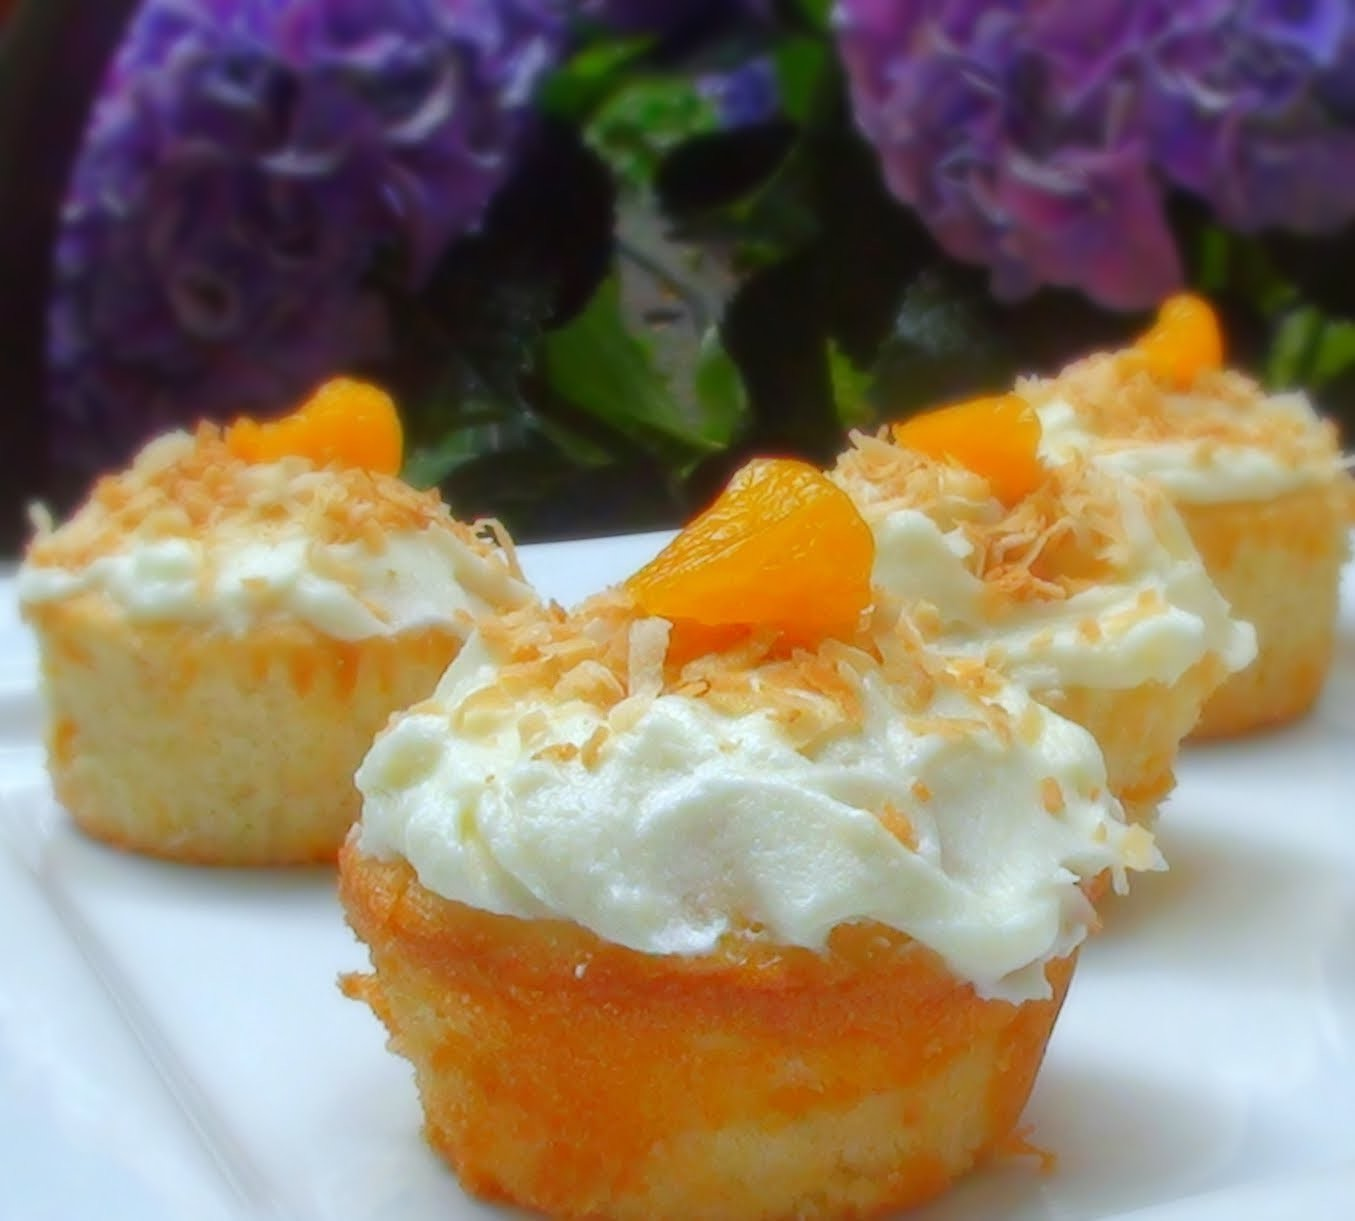 Tropical Mandarin Cupcakes Recipe - How to Make Cupcakes